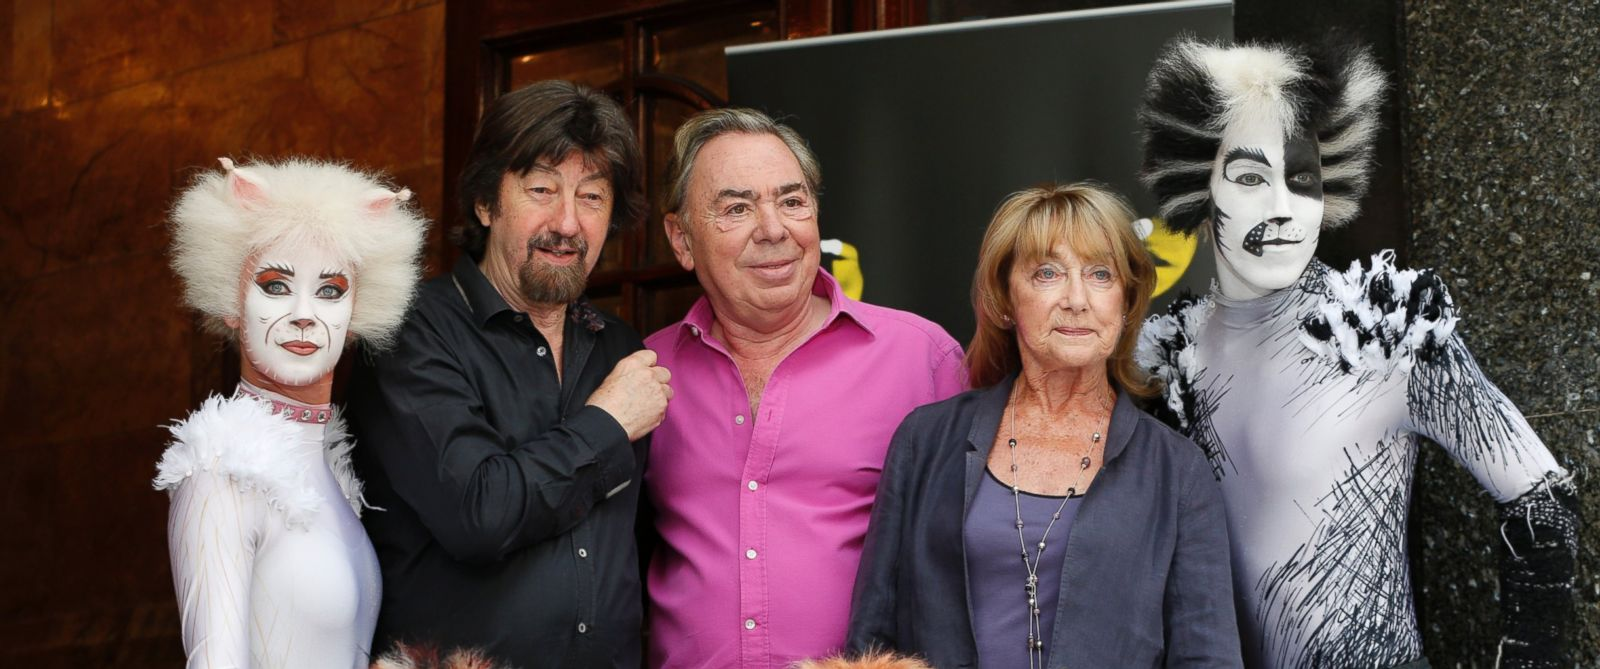 PHOTO:Andrew Lloyd Webber, center, Trevor Nunn, left, and Gillian Lynne, center right, pose for photographers with performers in cat costumes, during a photo-op to promote the return of the musical Cats, in London, in this July 7 2014 file photo.